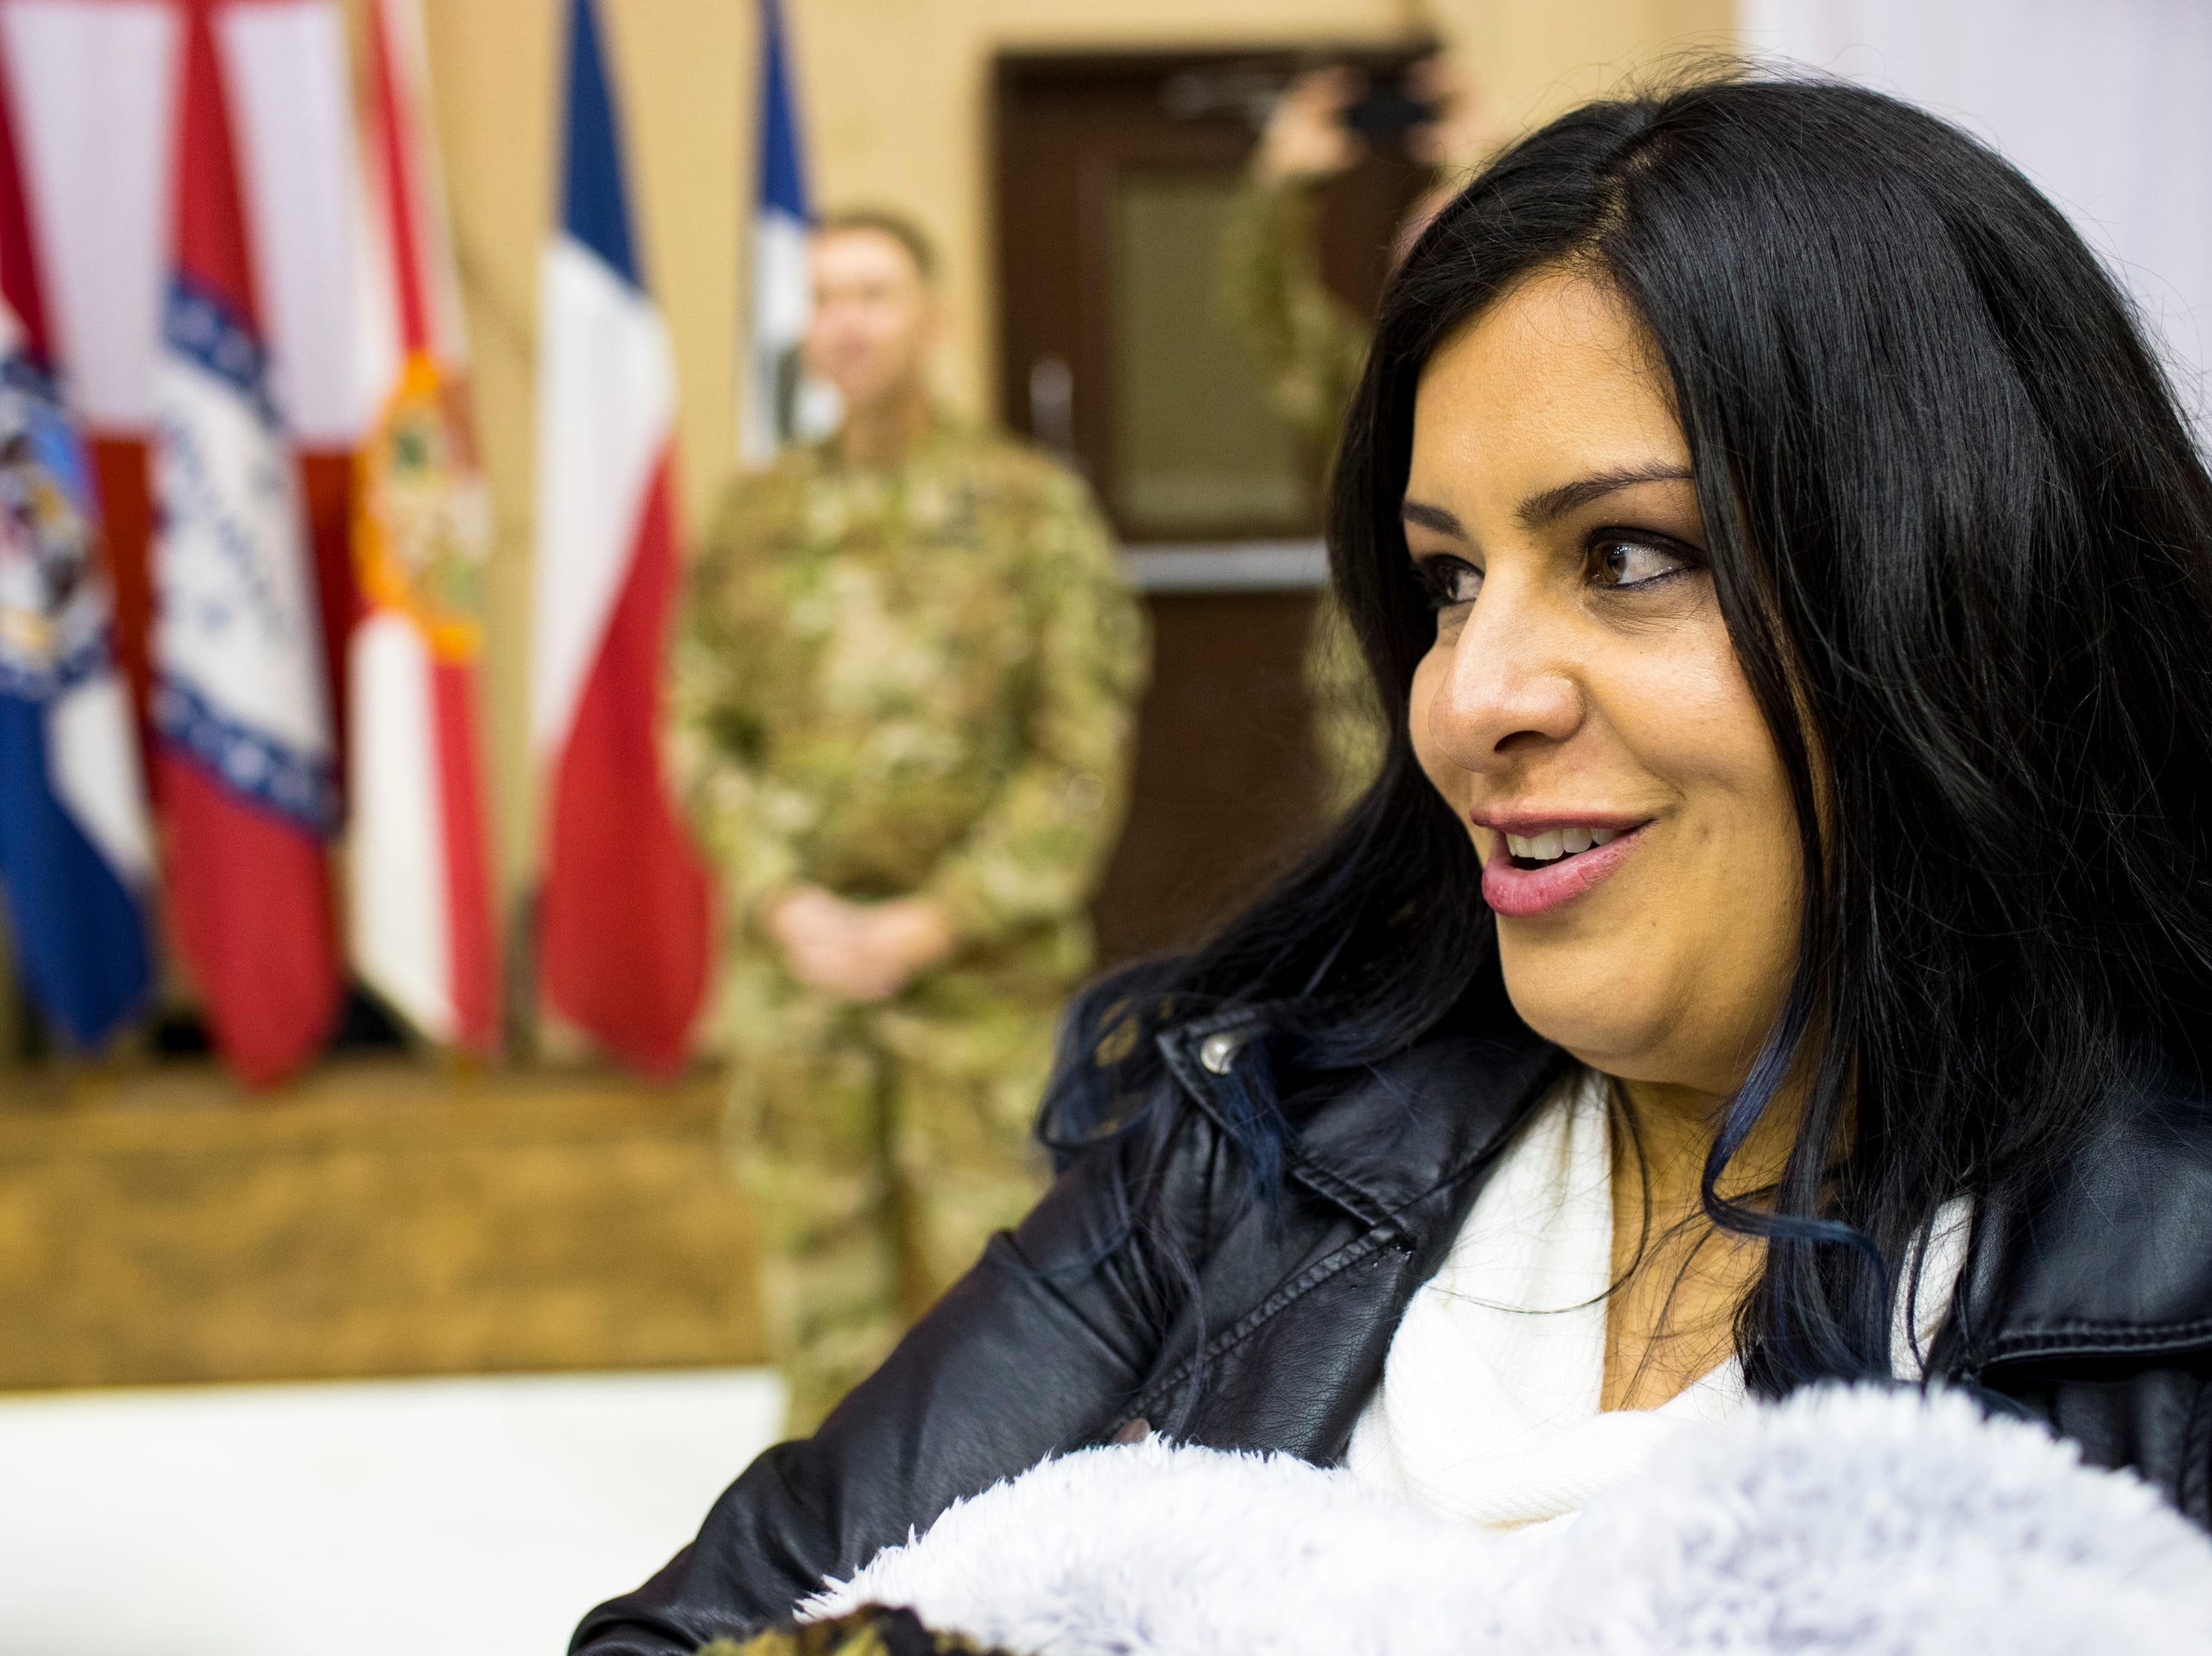 Elizabeth Peterson prepares to greet her husband, Sgt. Major Kevin Peterson during the welcome home ceremony for the 2nd Battalion, 44th Air Defense Artillery Regiment and 101st Airborne Division at Fort Campbell in the early hours of Monday, Nov. 19, 2018. The soldiers were returning from a 9-month deployment in Afghanistan.